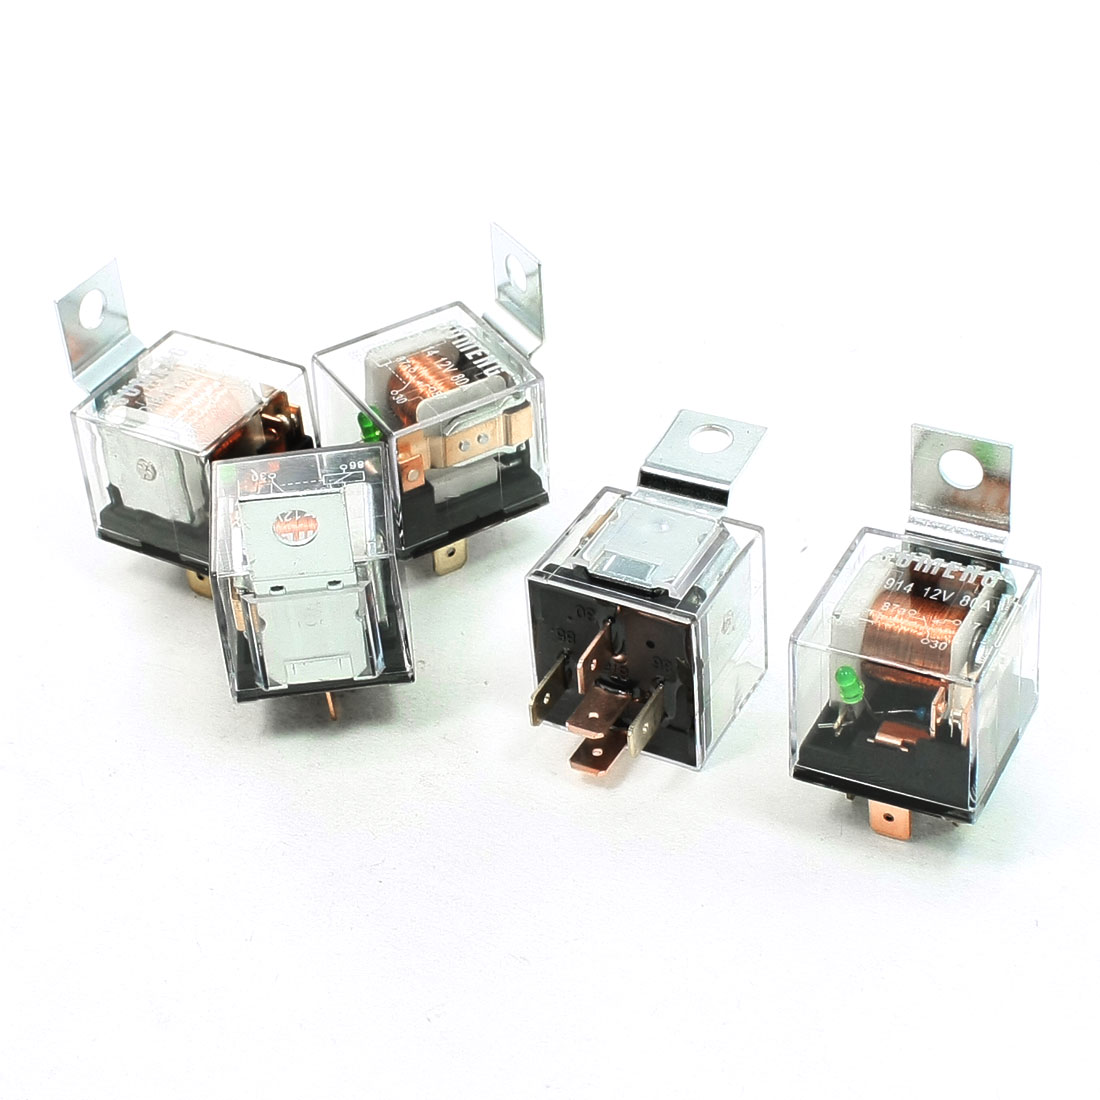 5 Pcs 1NC+1NO SPDT 5 Pins Green Pilot Lamp Automotive Truck Car Relay DC 12V 80A